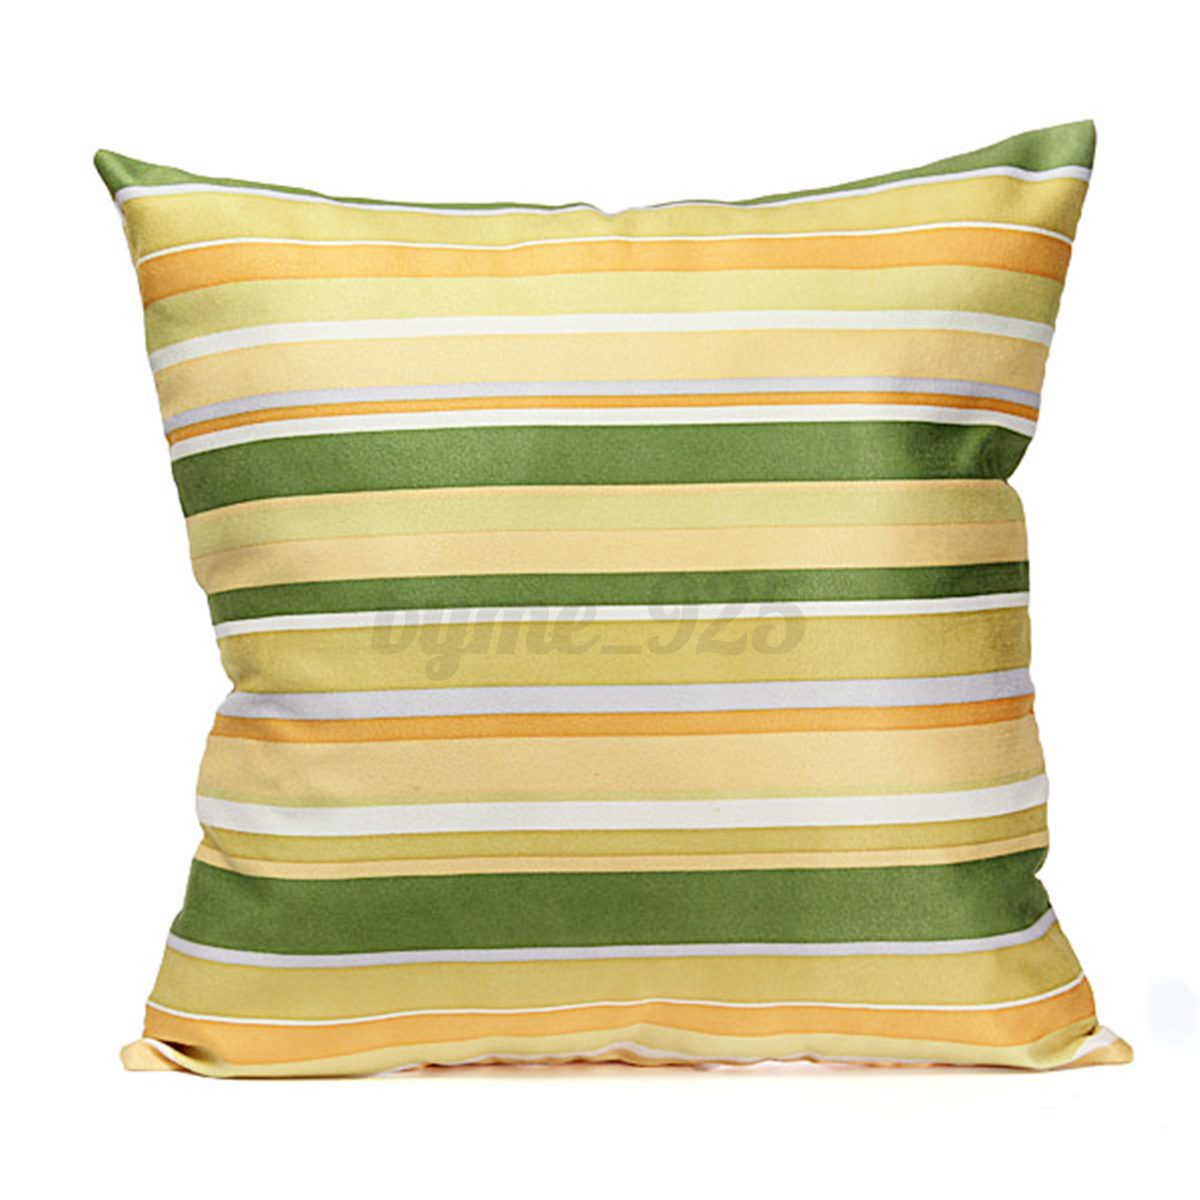 Vintage Flowers Throw Pillow Cover Floral Striped Cushion